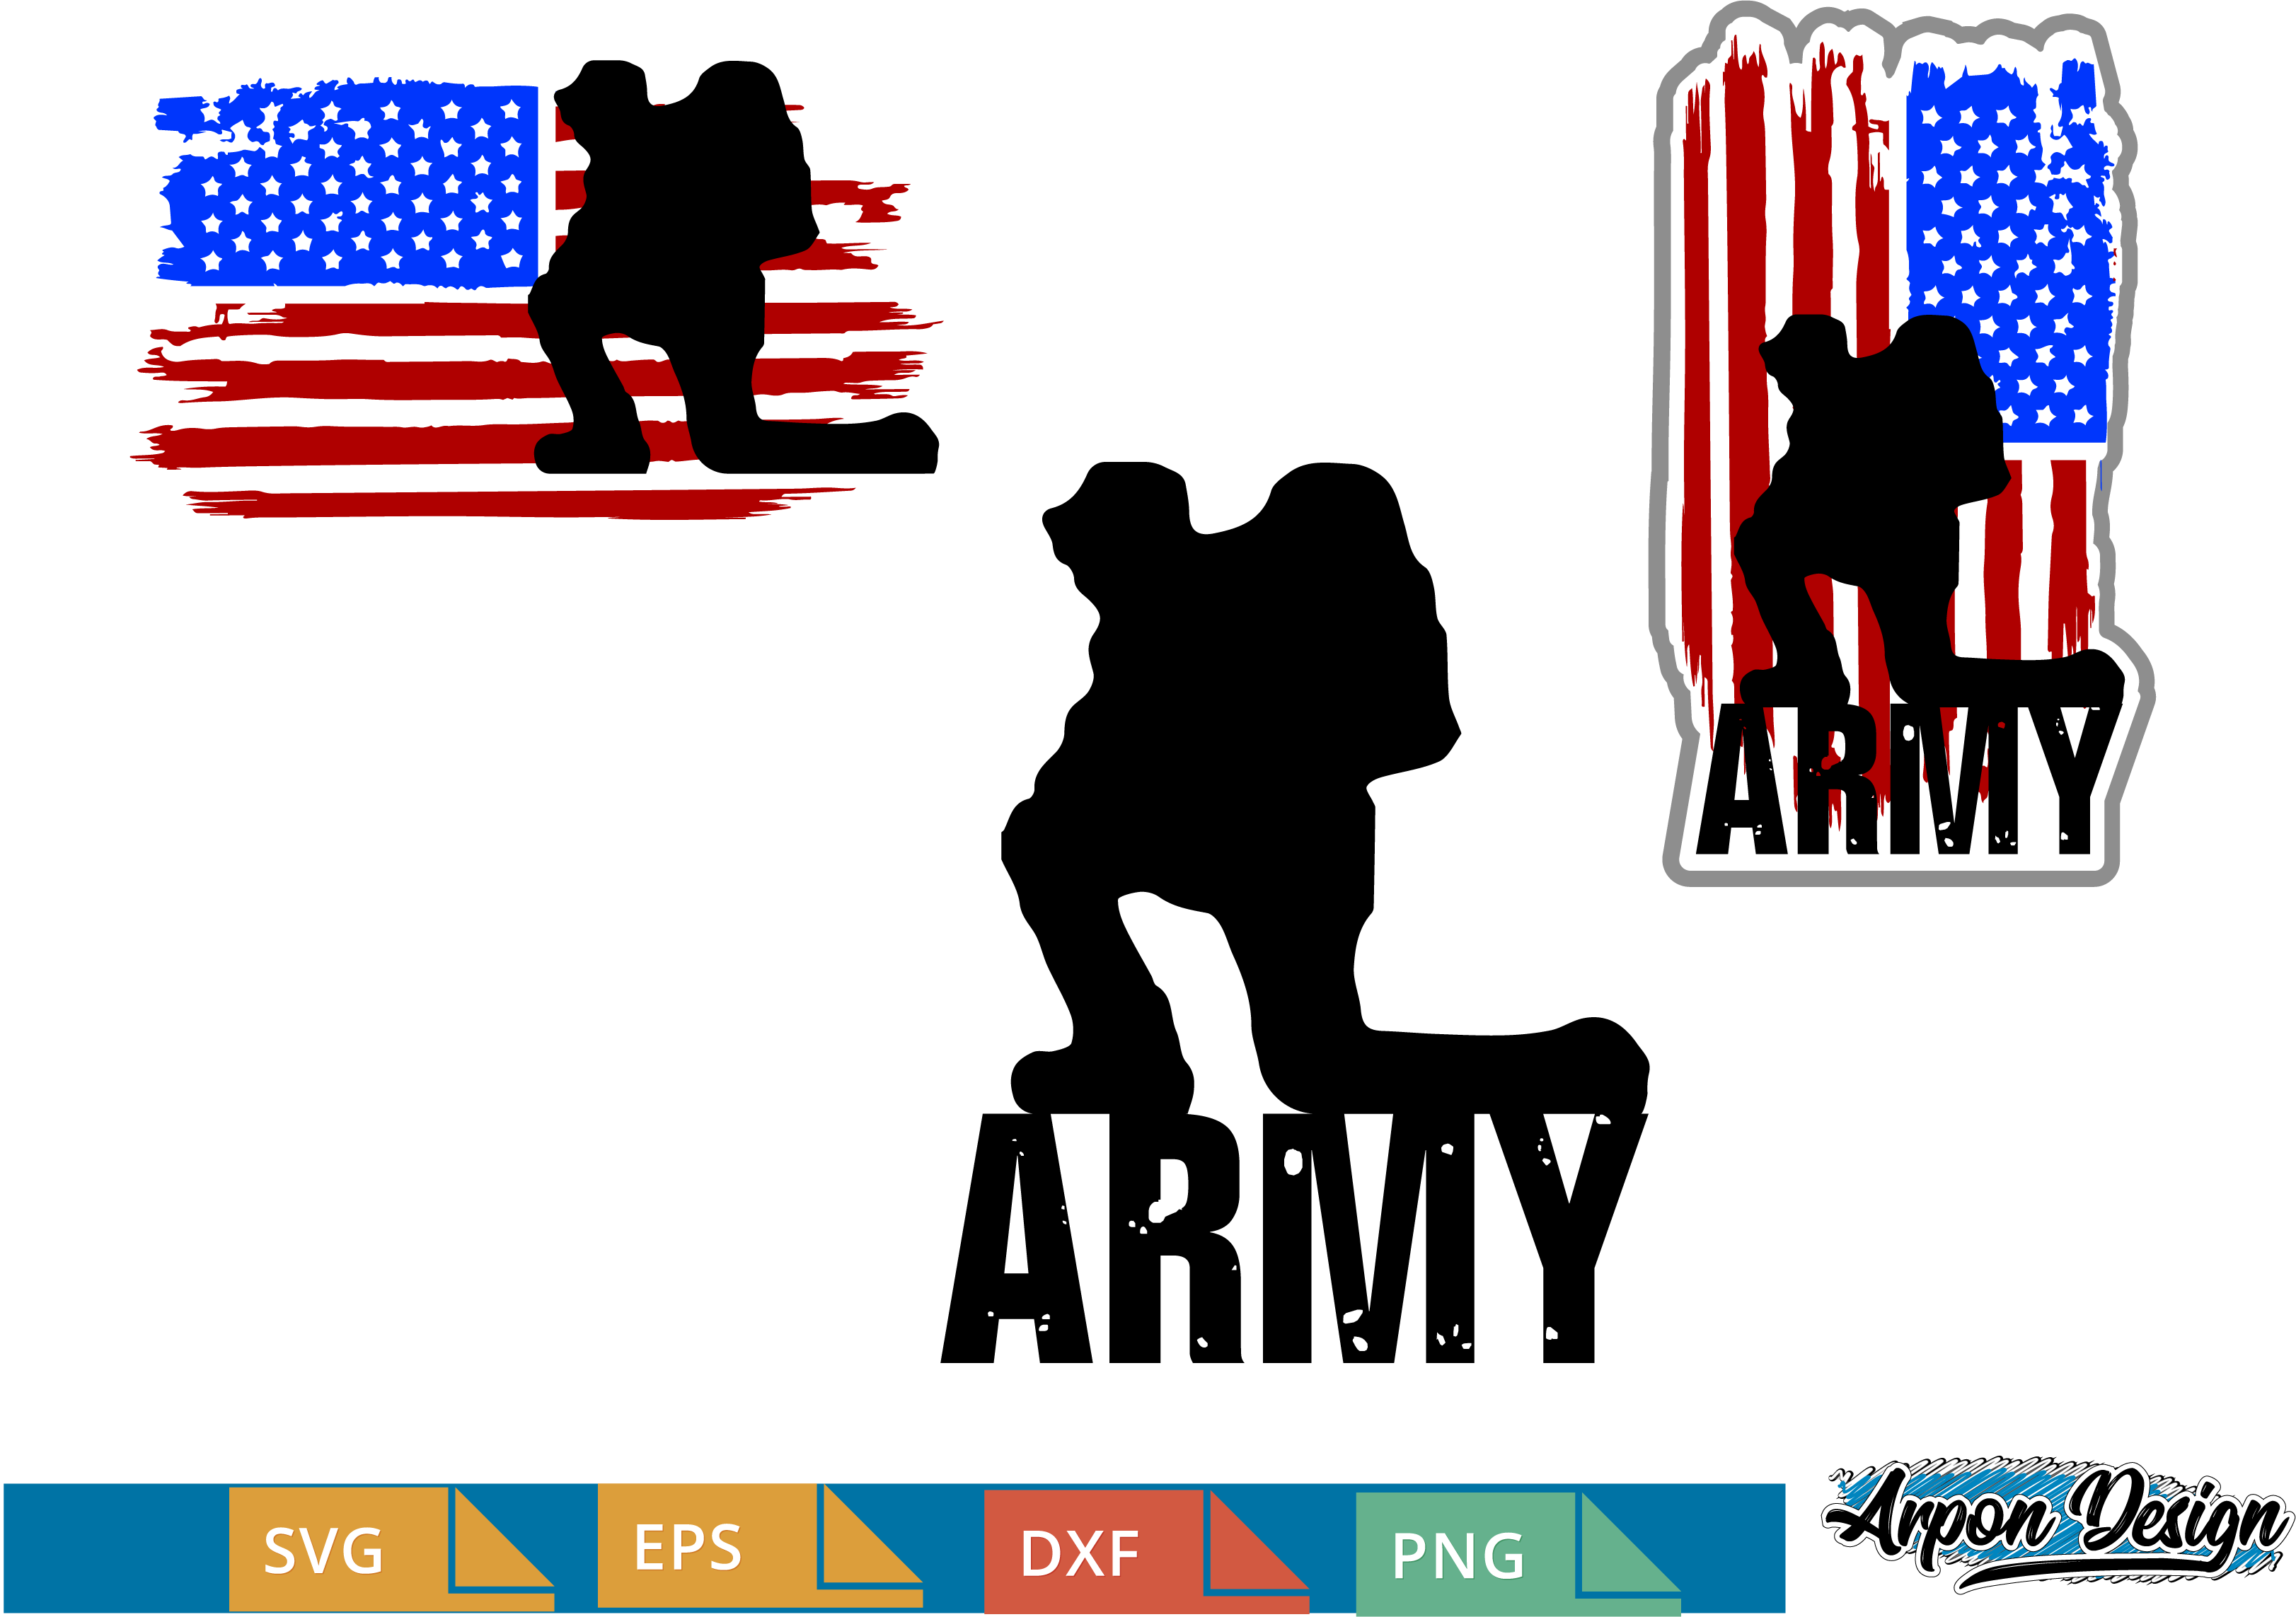 Download Free Army Flag Usa Graphic By Arpondesign Creative Fabrica for Cricut Explore, Silhouette and other cutting machines.